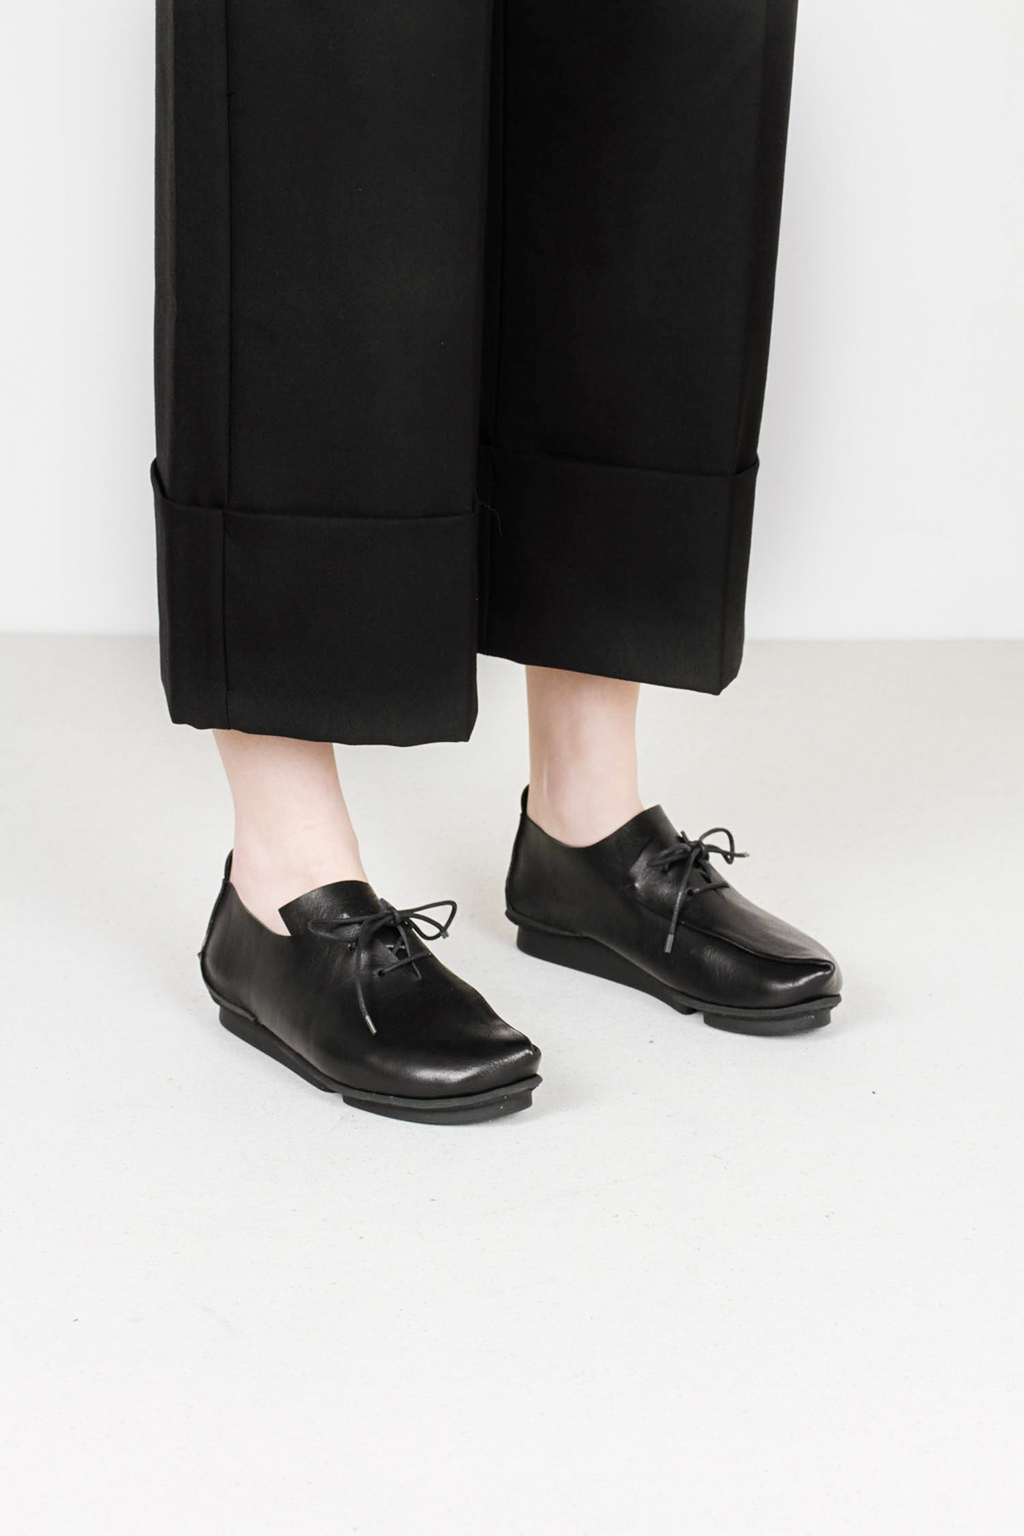 Trippen crease f waw blk leather shoes